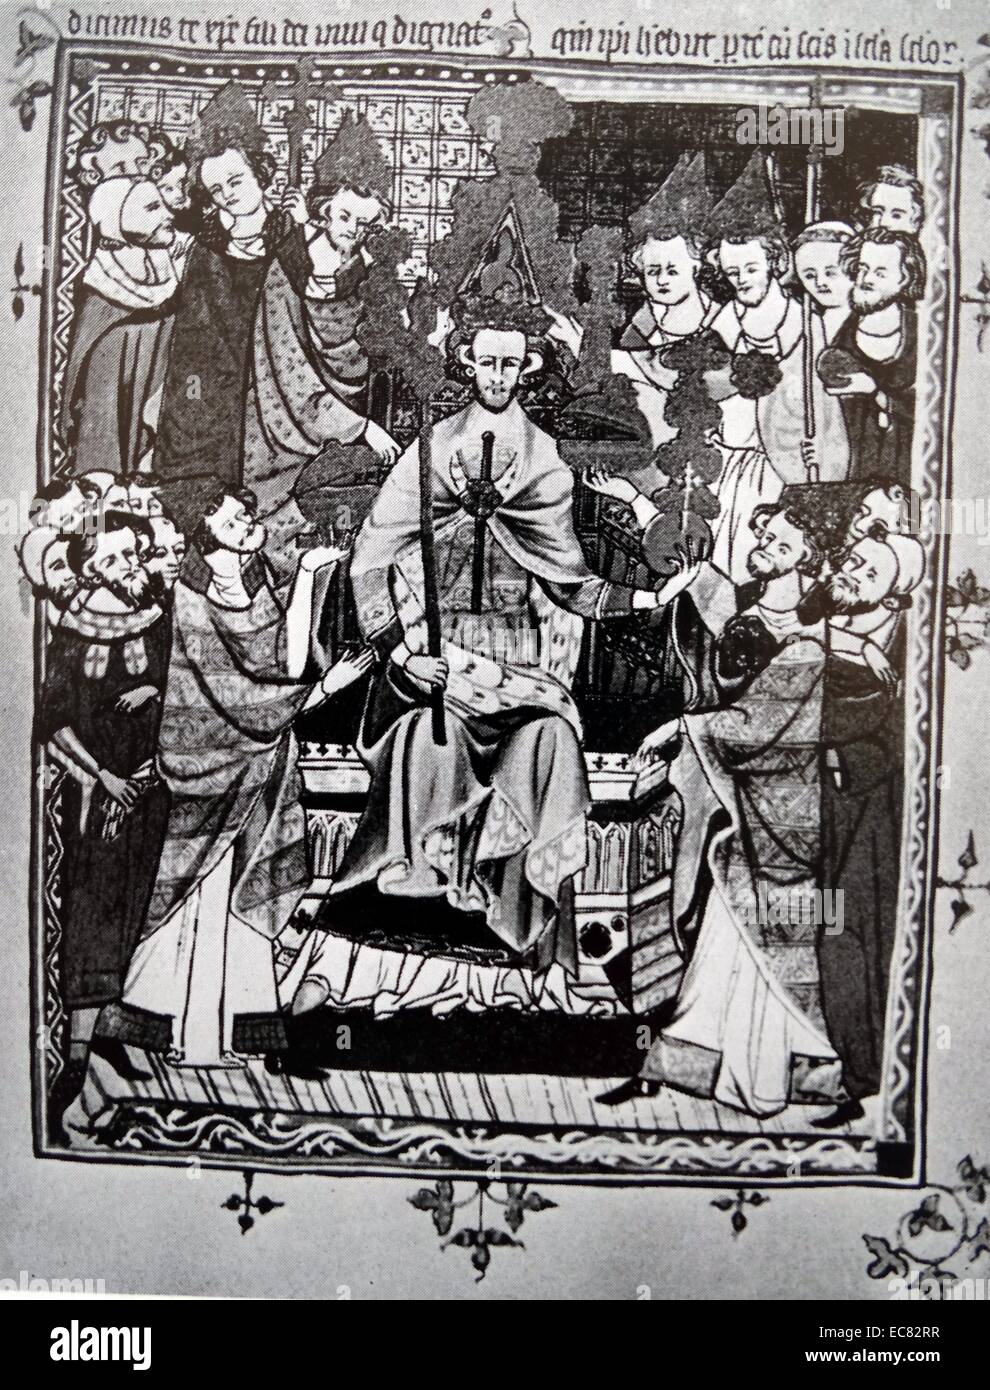 Coronation of a king in the early fourteenth century - Stock Image